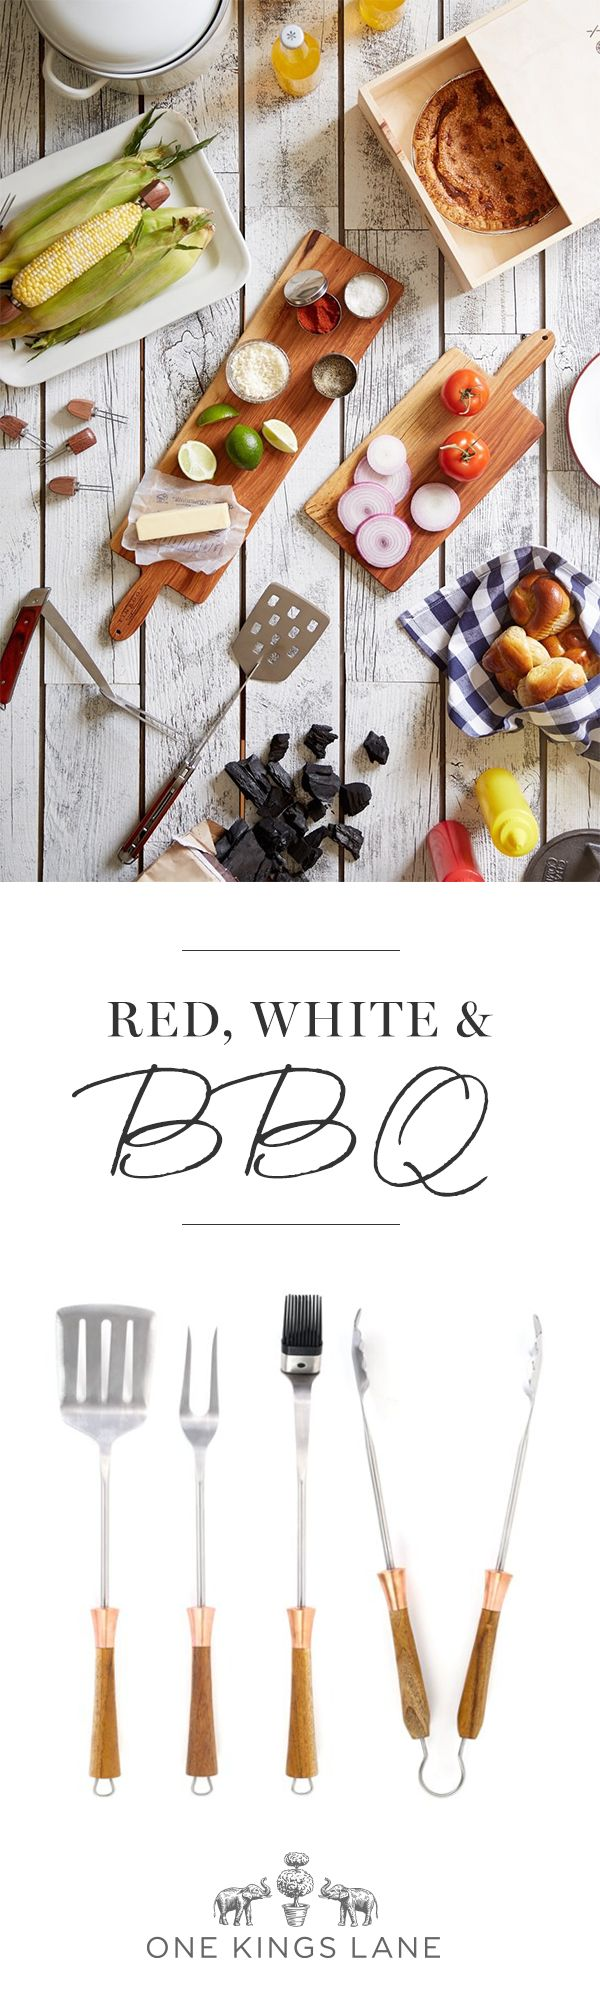 Whether you've been grilling since January or just getting fired up,  there's nothing like a classic summer barbecue spread.  Find all the fresh ingredients at One Kings Lane.